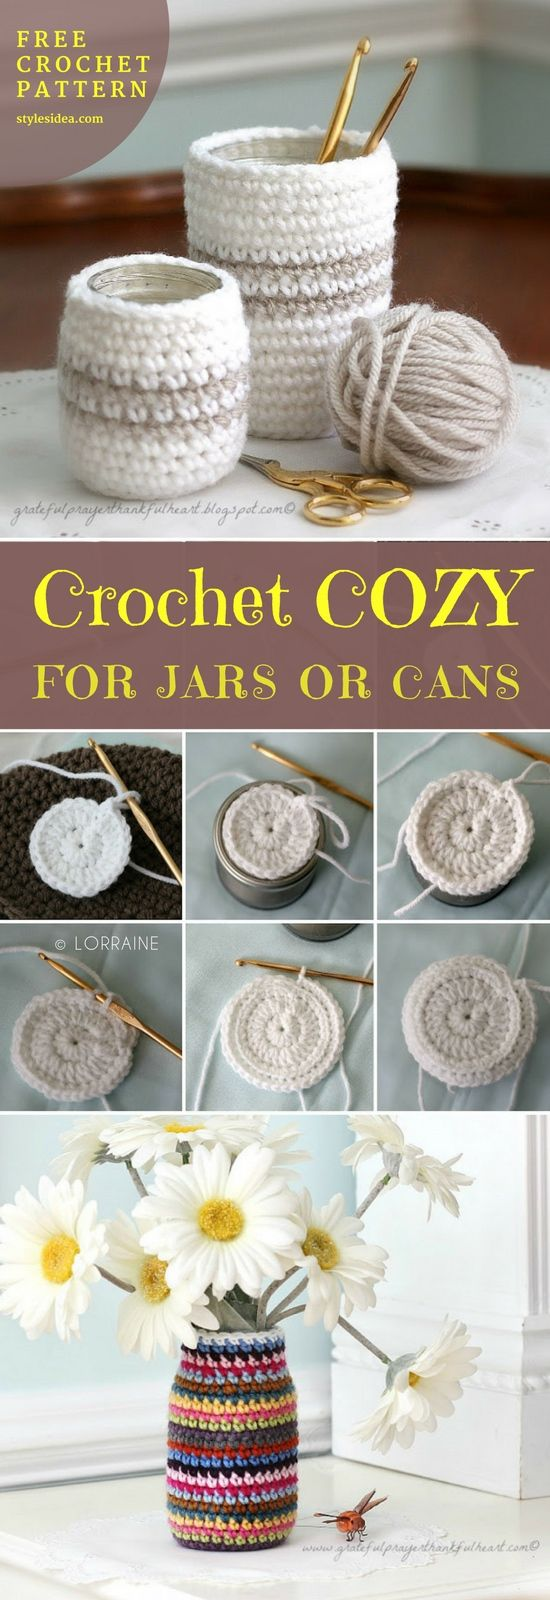 #crochetCozyCan or Jar #FreeCrochetPattern #CrochetforHome Decor | size: any | Written | US Terms Level: beginner yarn: Lily Sugar and Cream Key Lime Pie or baby wool hook: 5 mm (G) materials: scissors Author: By Lorraine st – Stitch hdc – half double crochet sl – slip stitch sc – single crochet